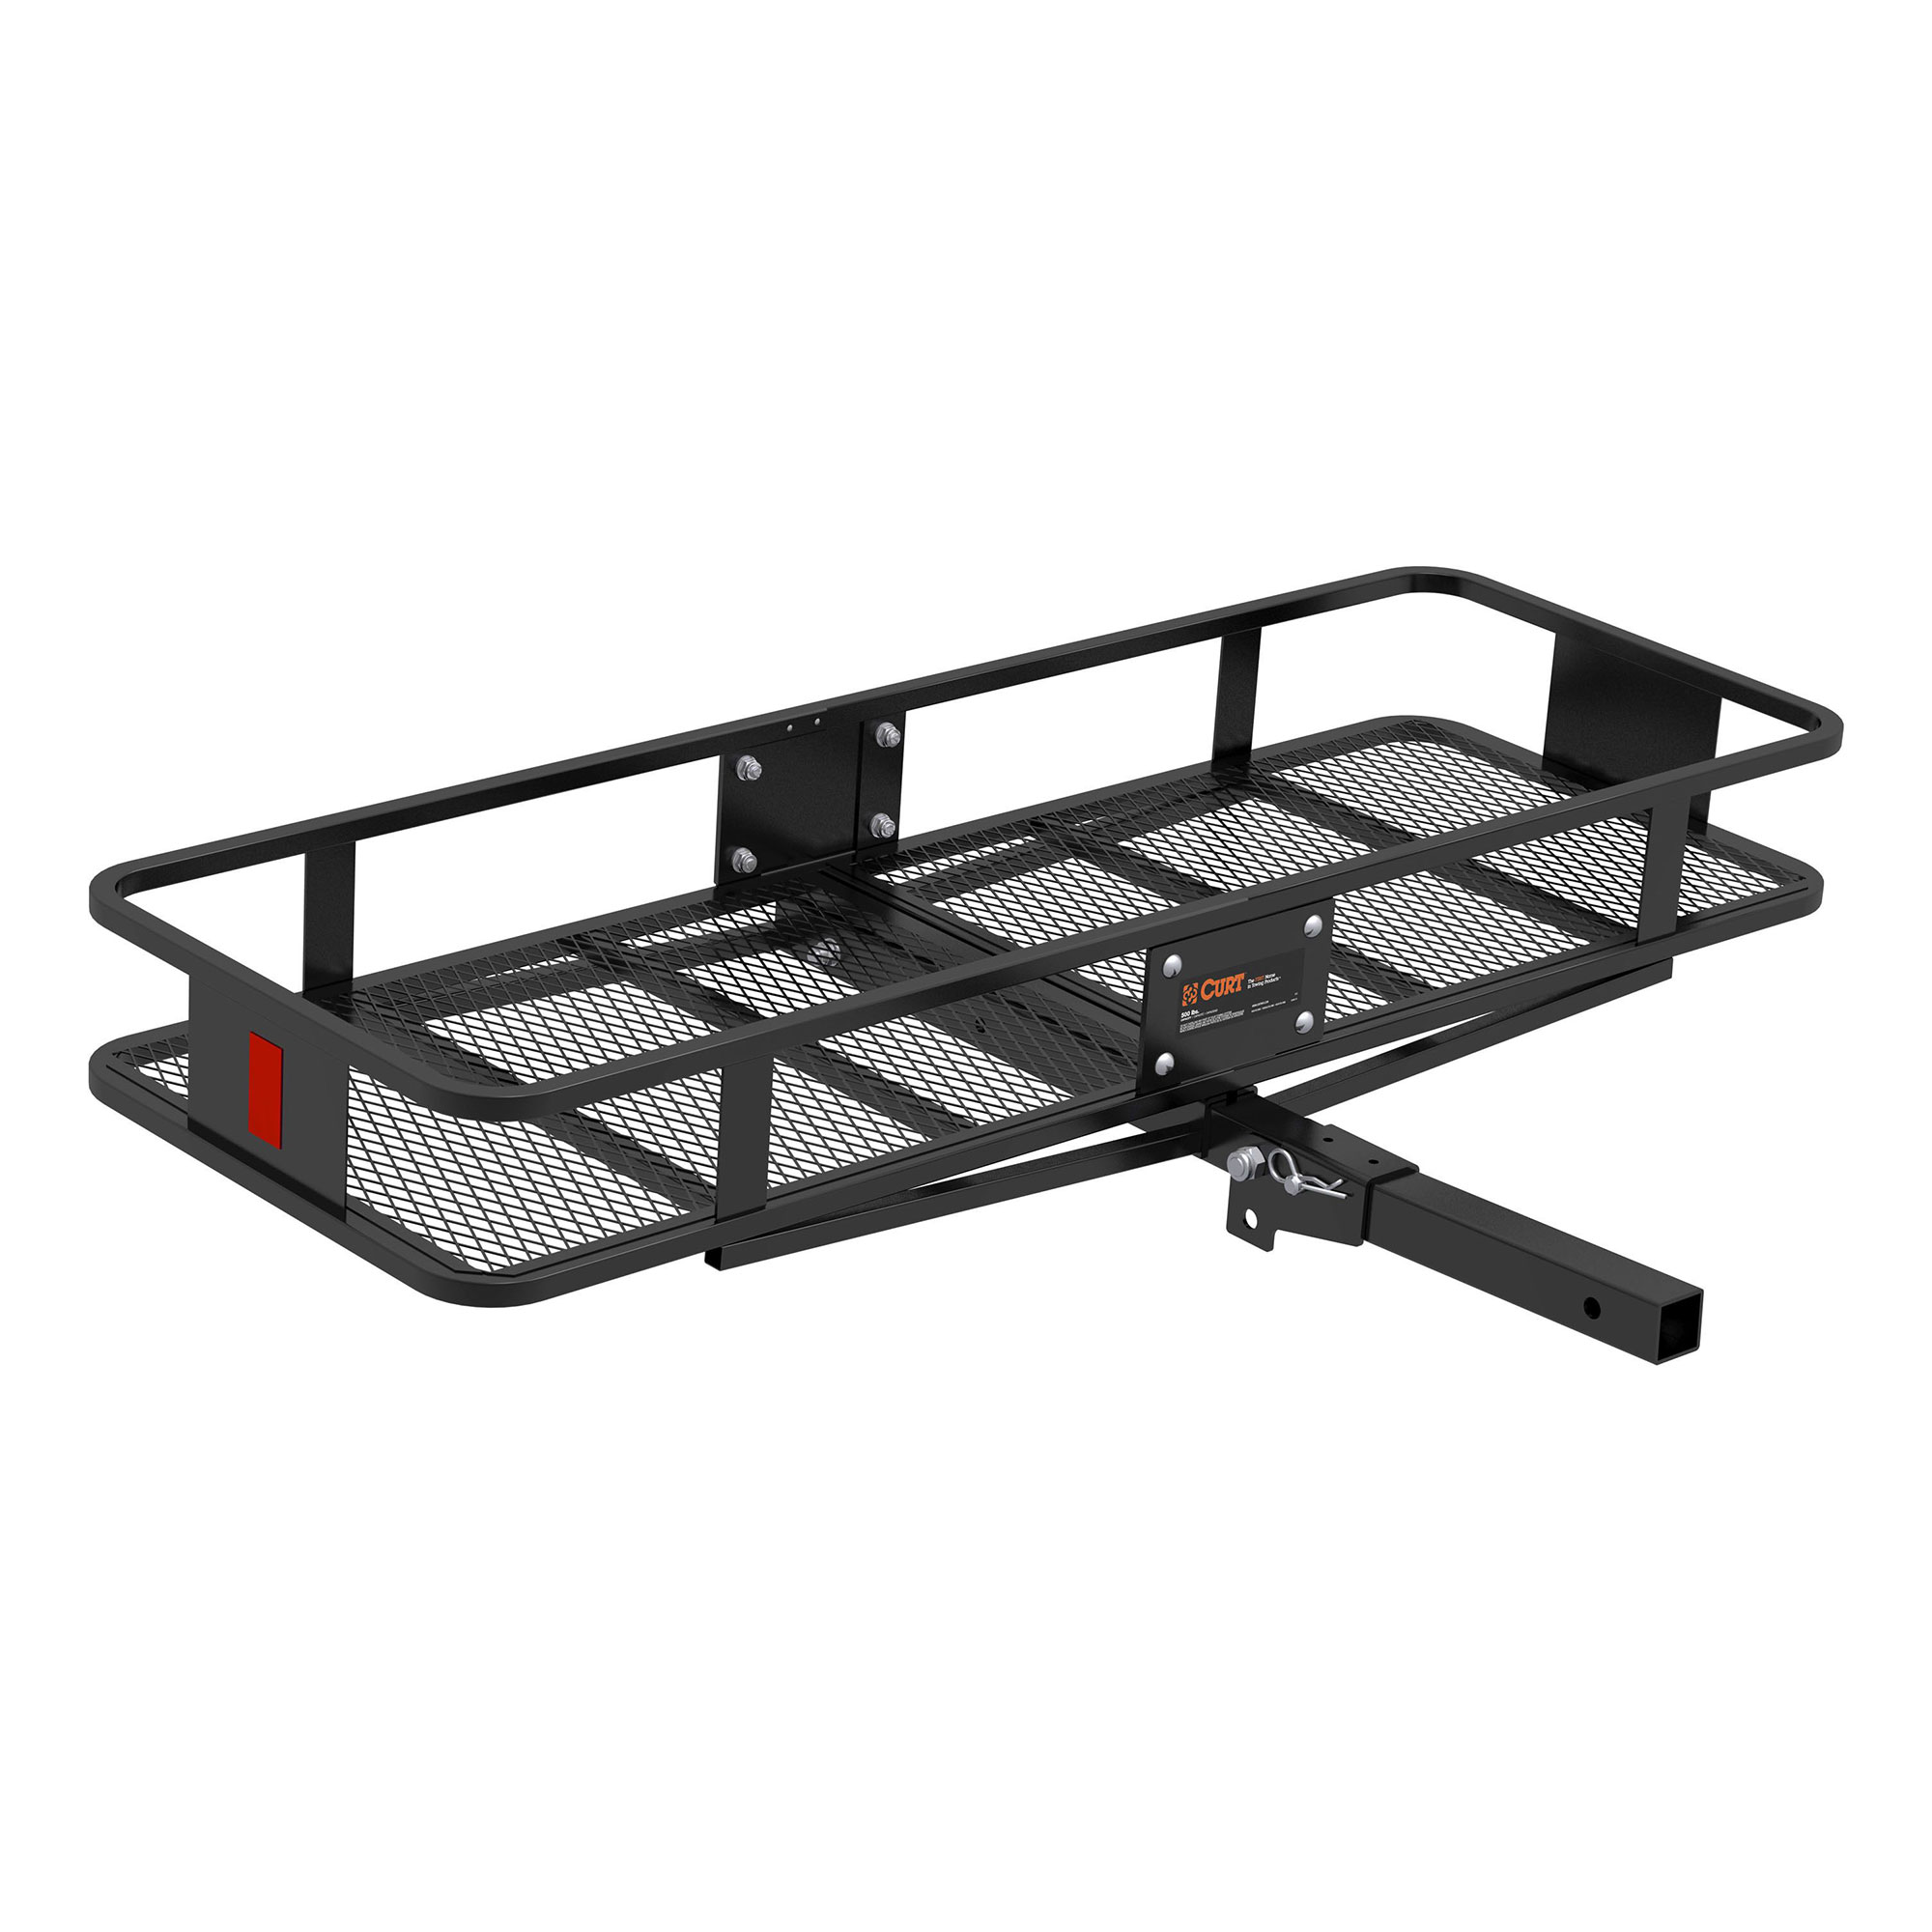 curt hitch 18151 trailer hitch cargo carrier mounts in 2 inch receiver 500 pound capacity 60 inch x 20 inch x 6 inch mesh folding